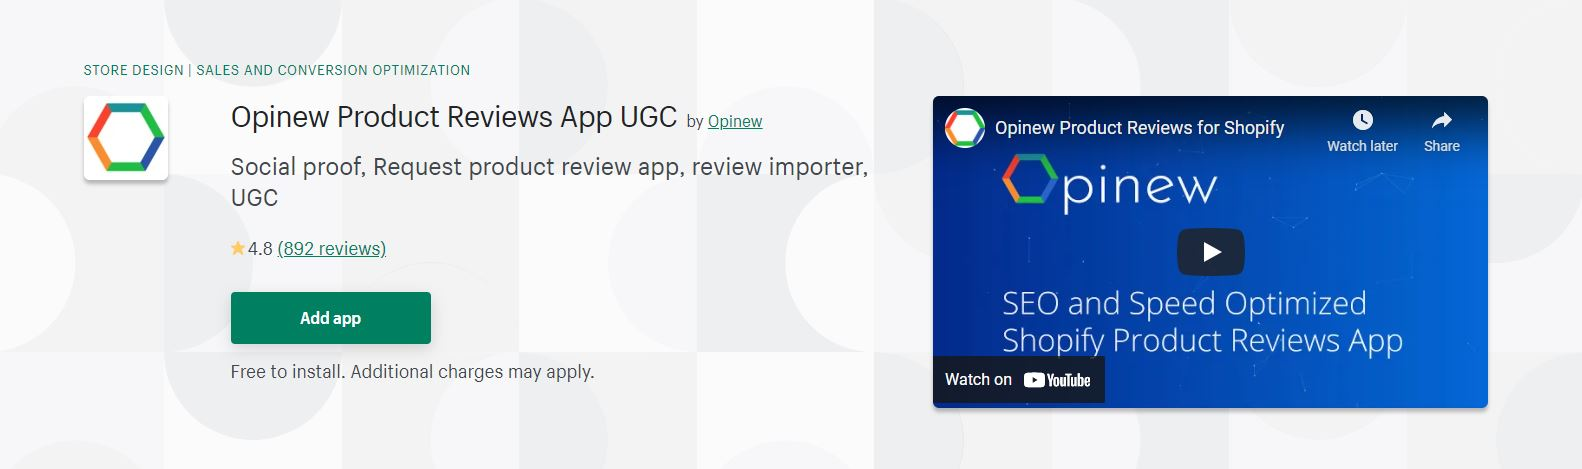 Opinew Product Reviews App UGC